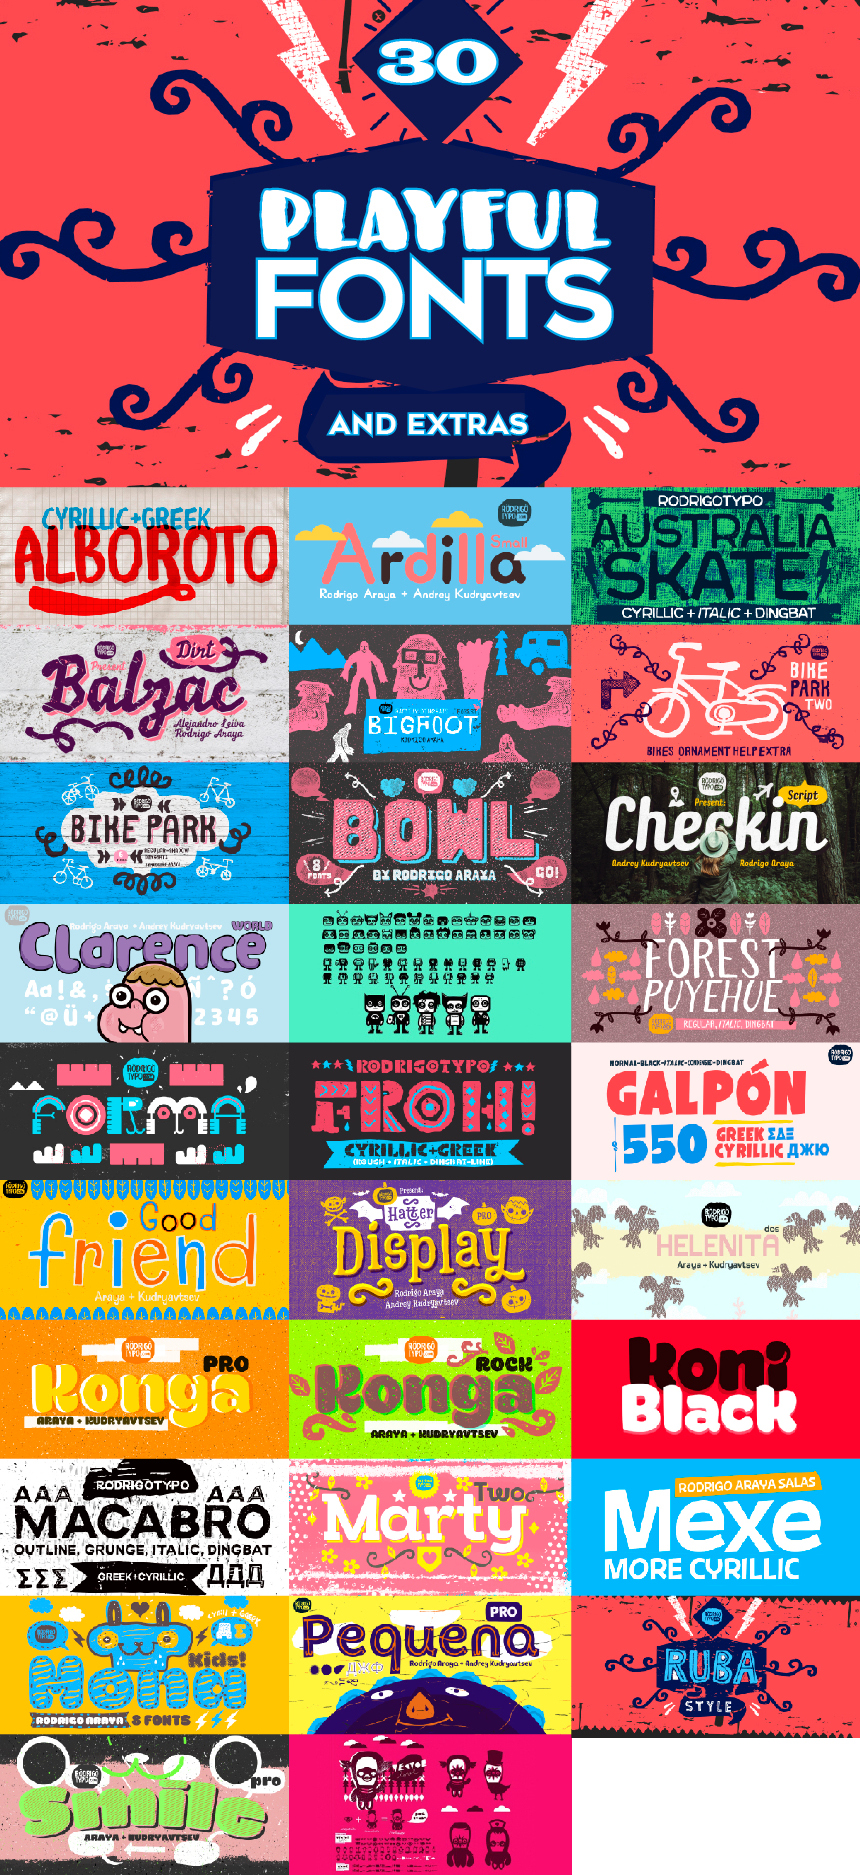 30 Playful Fonts & Extras! - Only $39